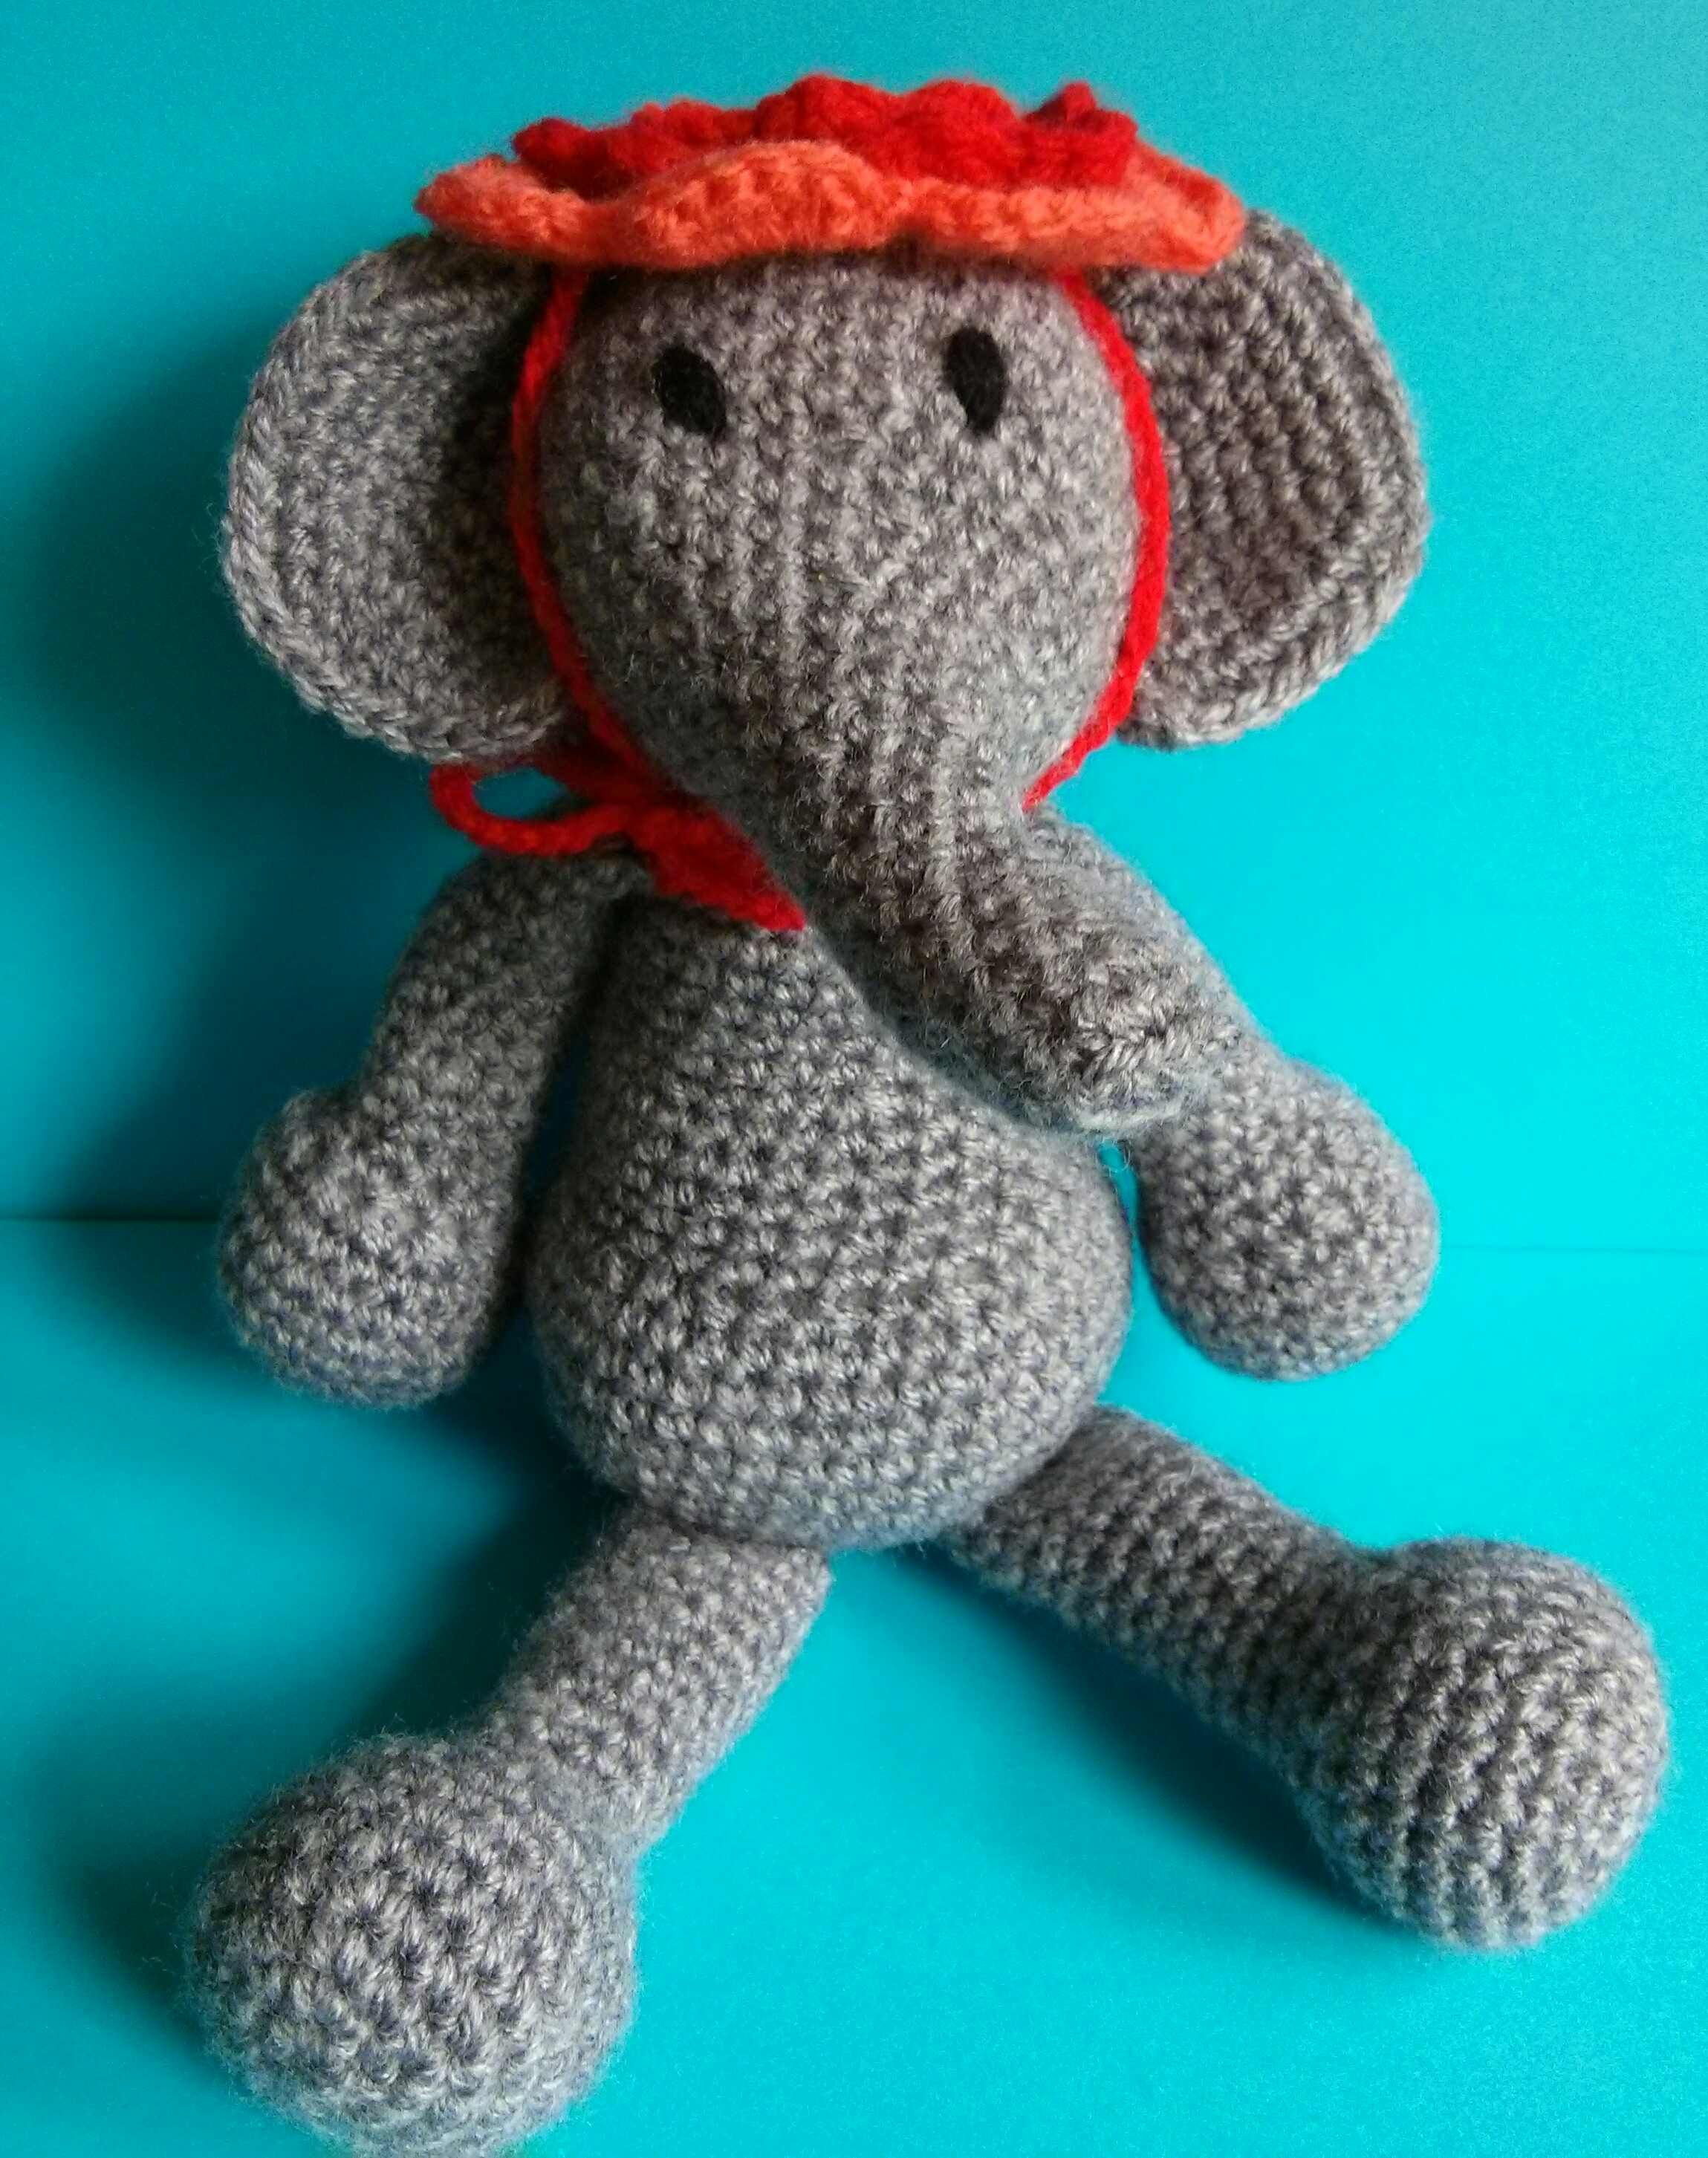 Crocheted Elephant Kerry Lord Pattern Edwards Menagerie